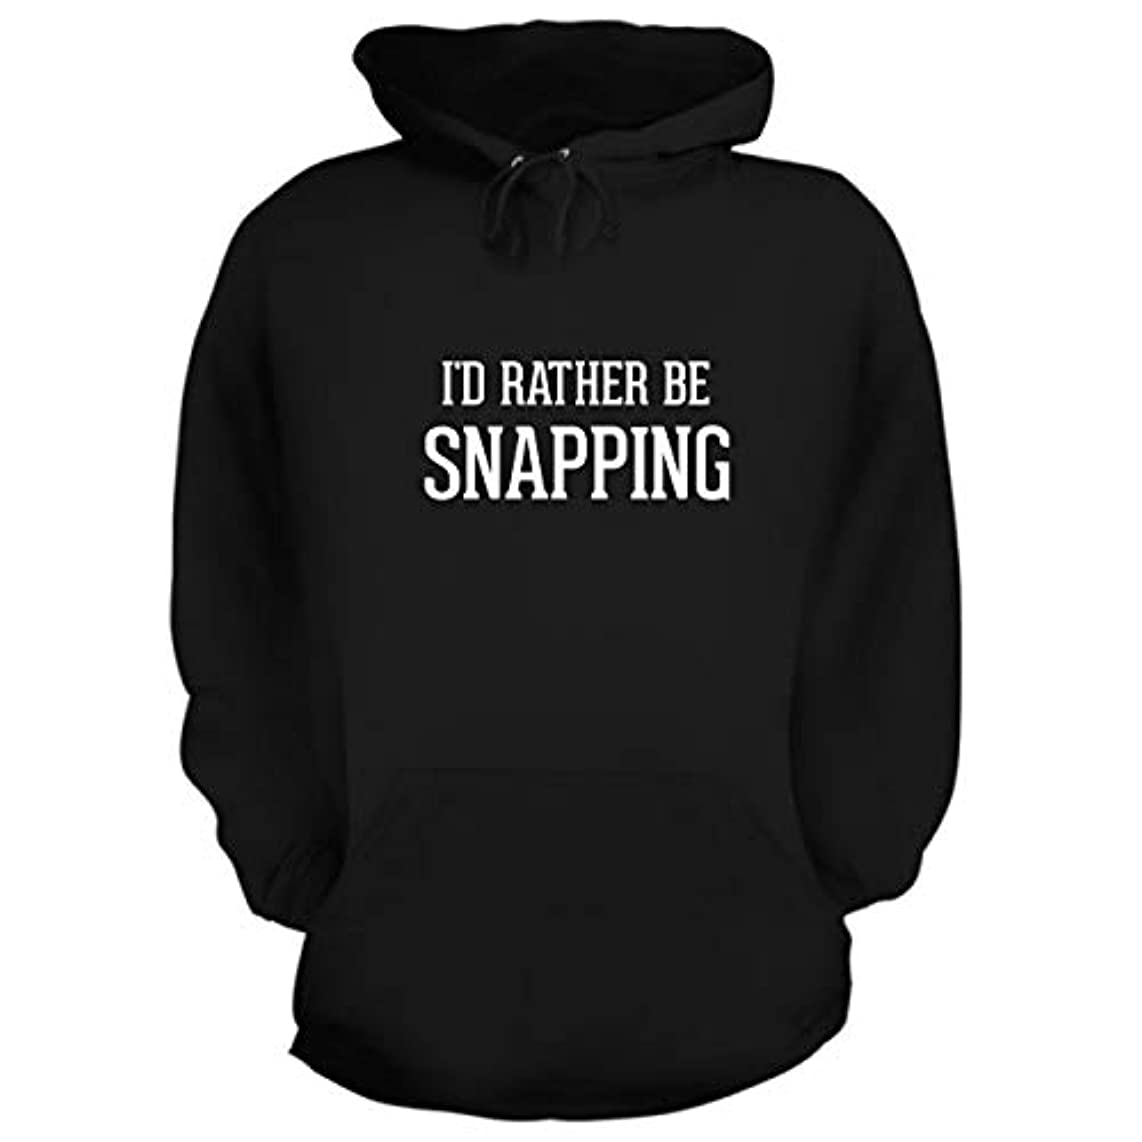 BH Cool Designs I'd Rather Be SNAPPING - Graphic Hoodie Sweatshirt